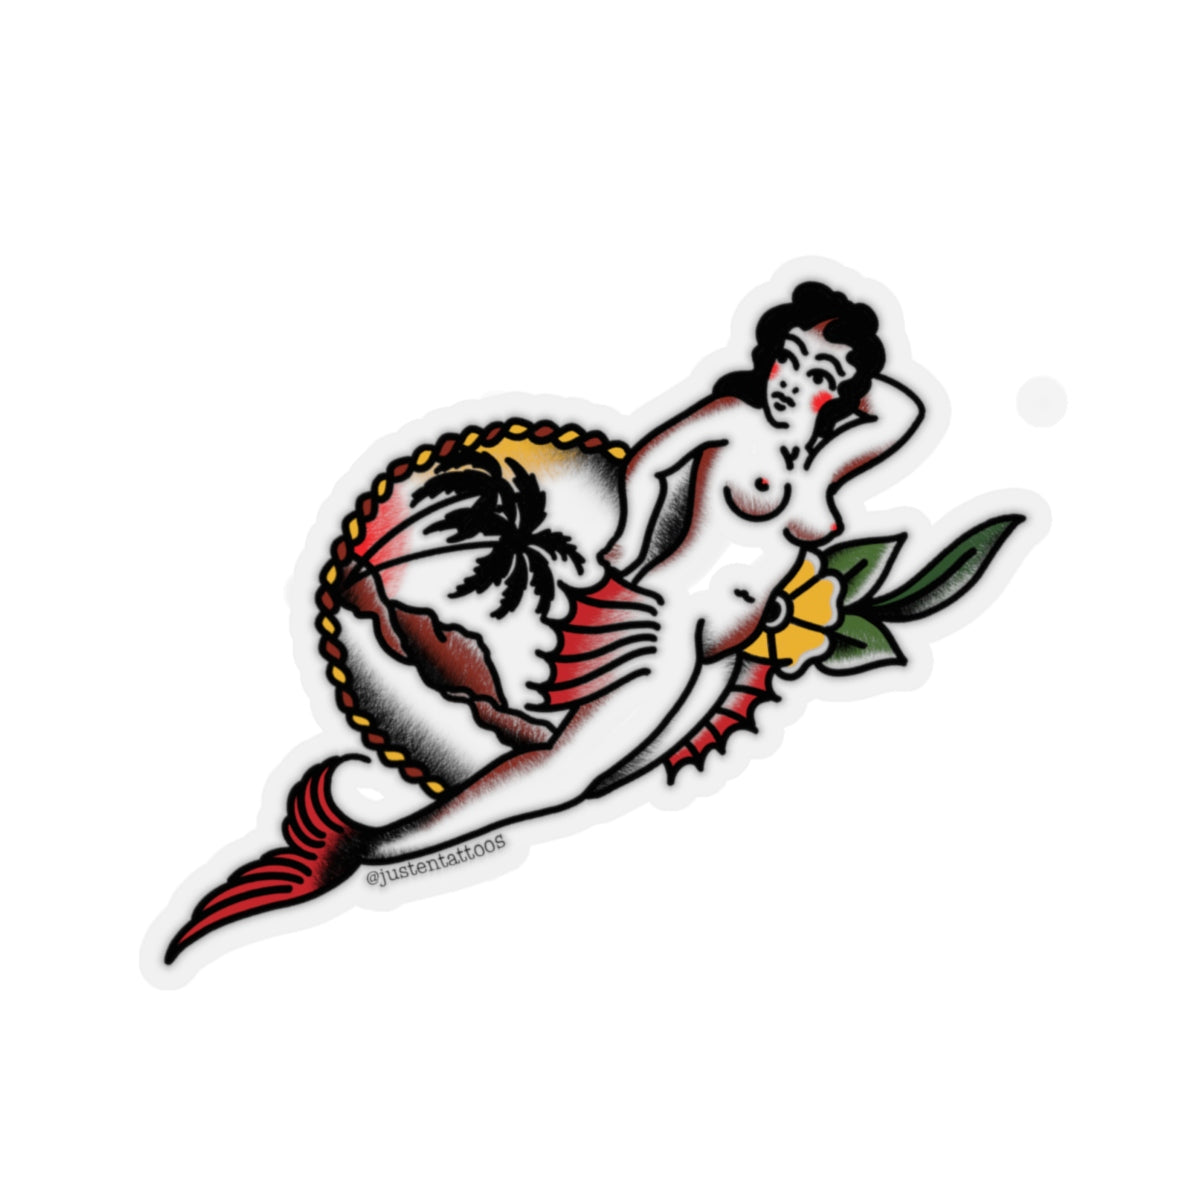 Mermaid Woman SJ Kiss-Cut Stickers